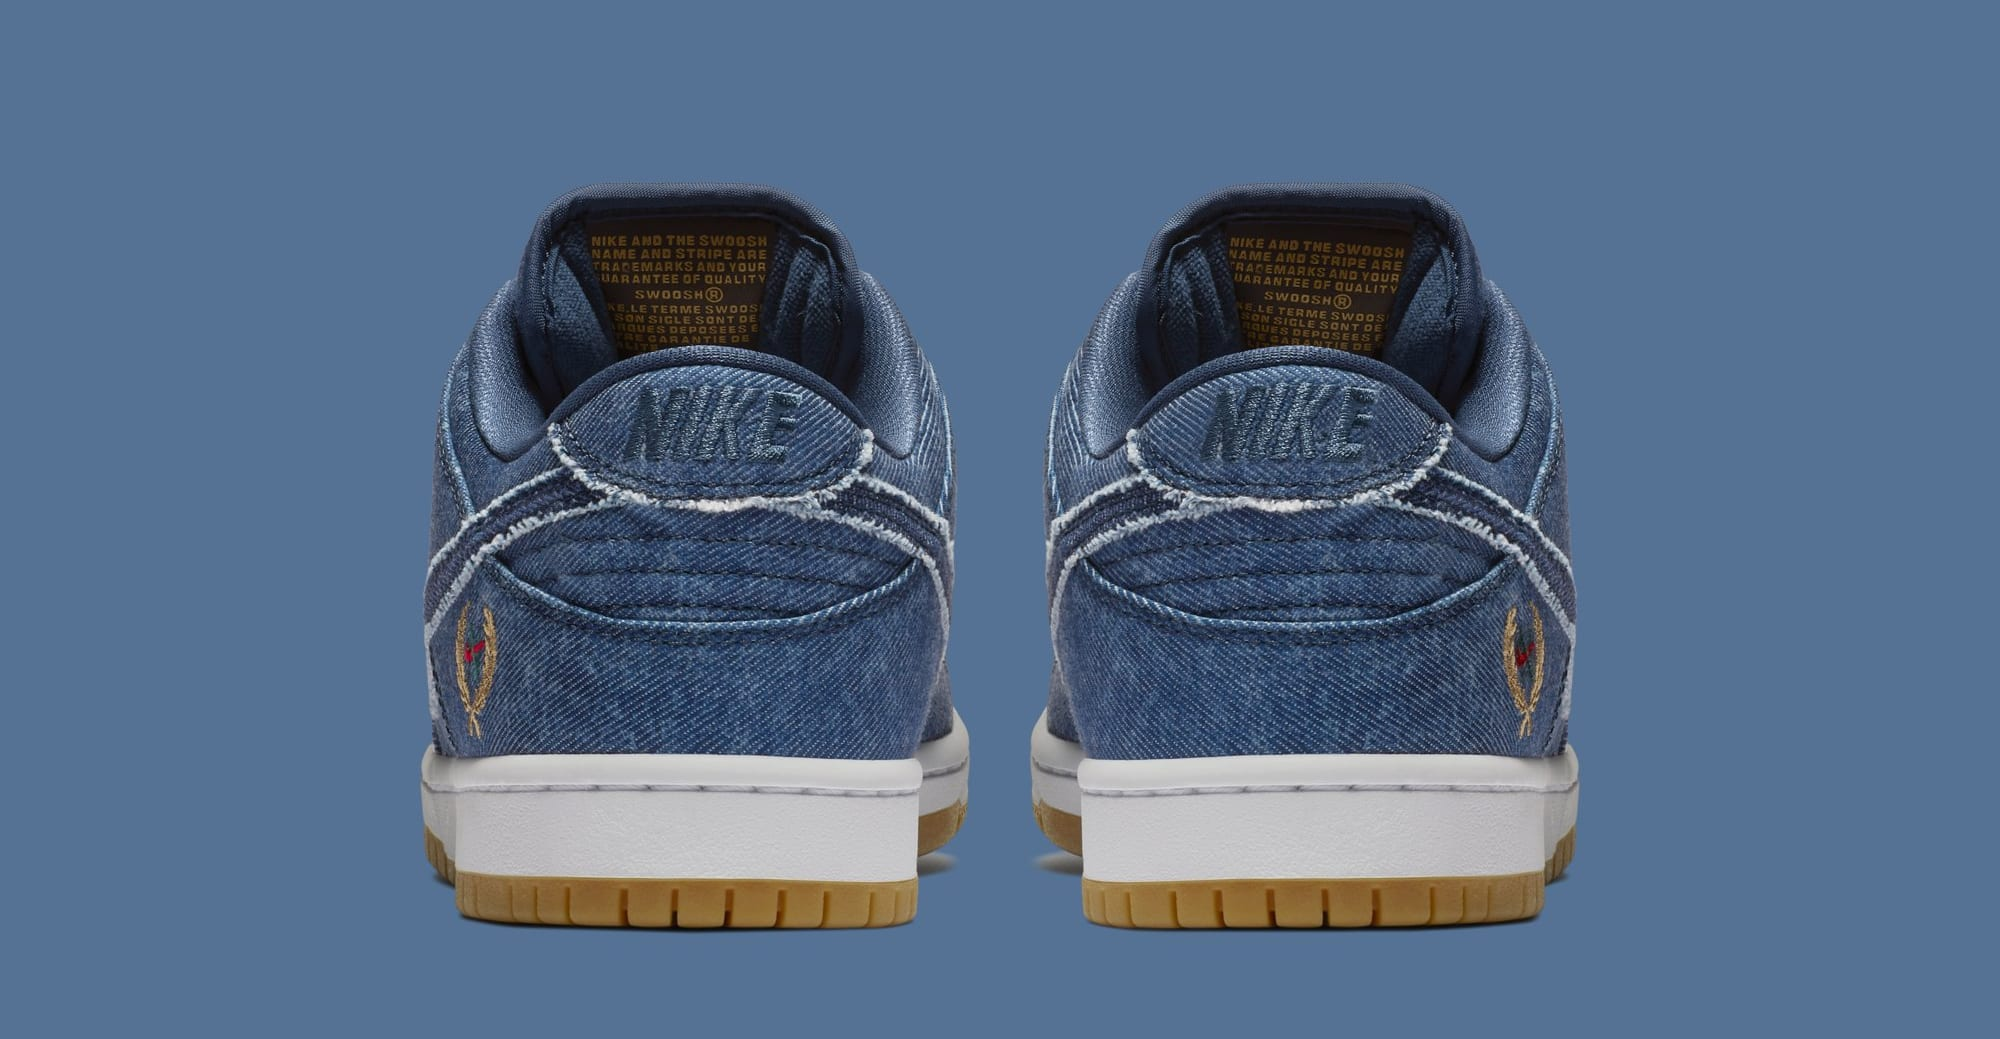 Nike SB Dunk Low 'Biggie' 883232-441 (Heel)